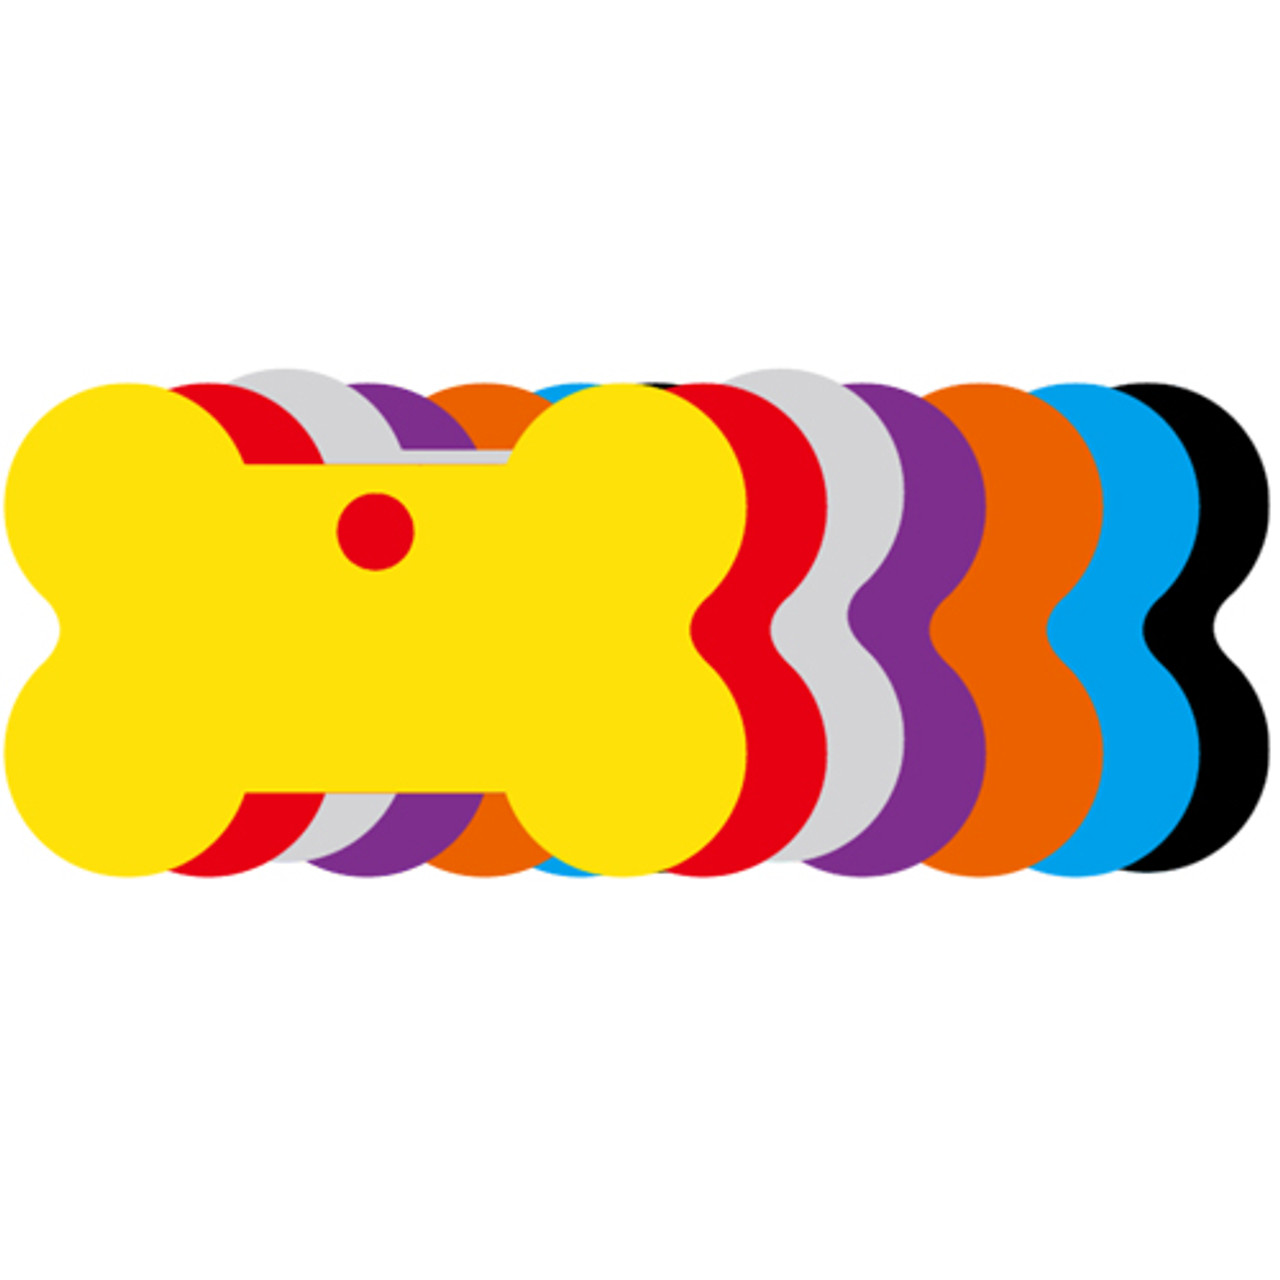 Variety picture of our anodized aluminum blank dog id tags that are in the shape of a bone. This picture shows the variety of colors that we offer to our customers.